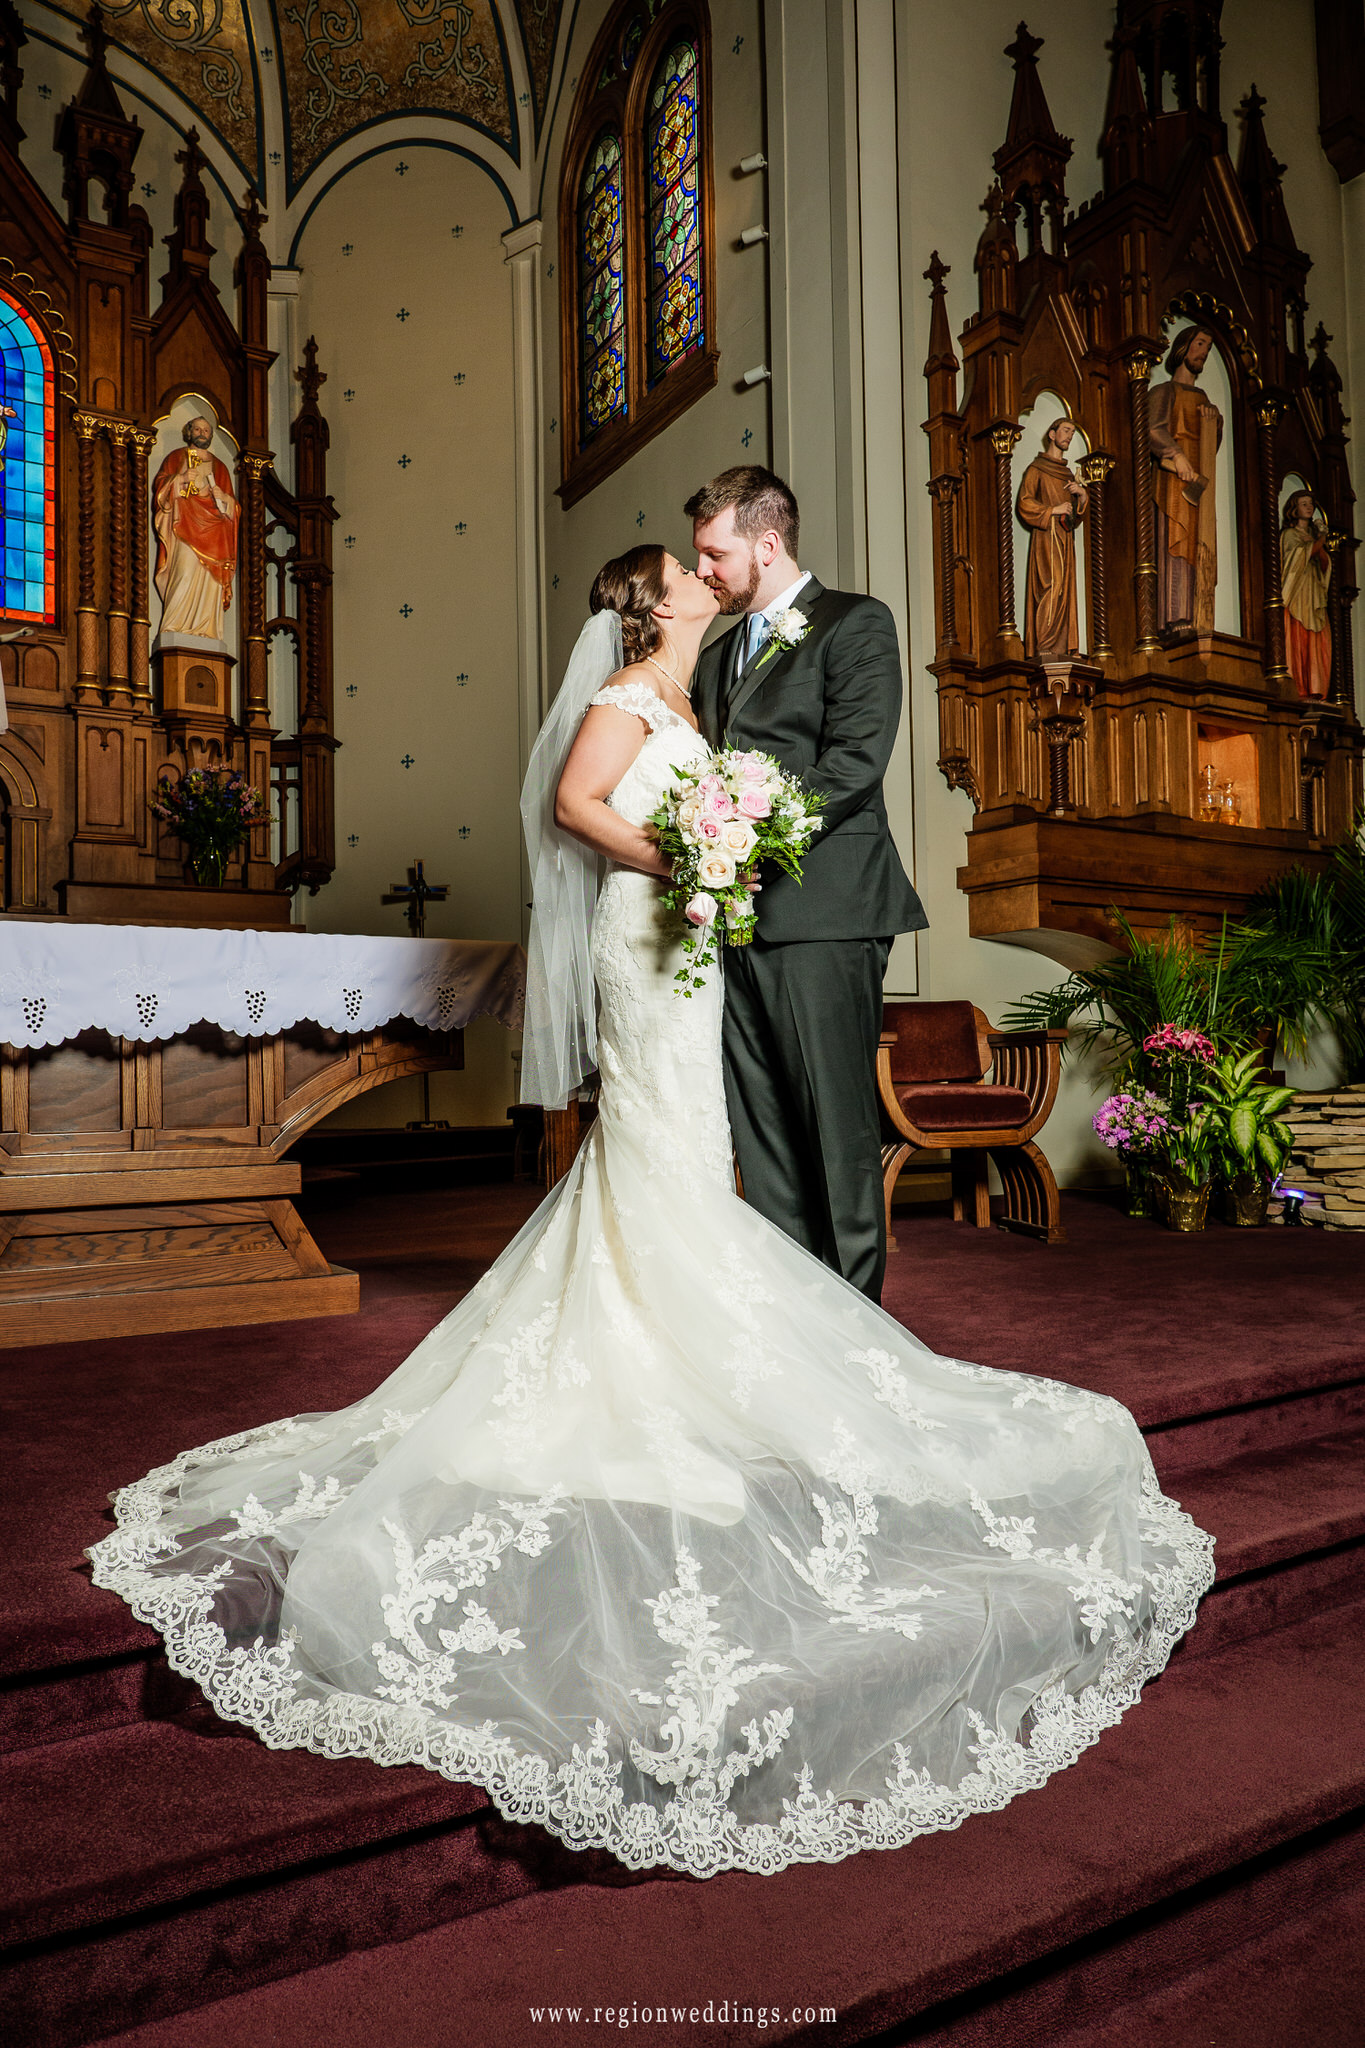 Bride and groom at the altar of Saint Mary's Church.